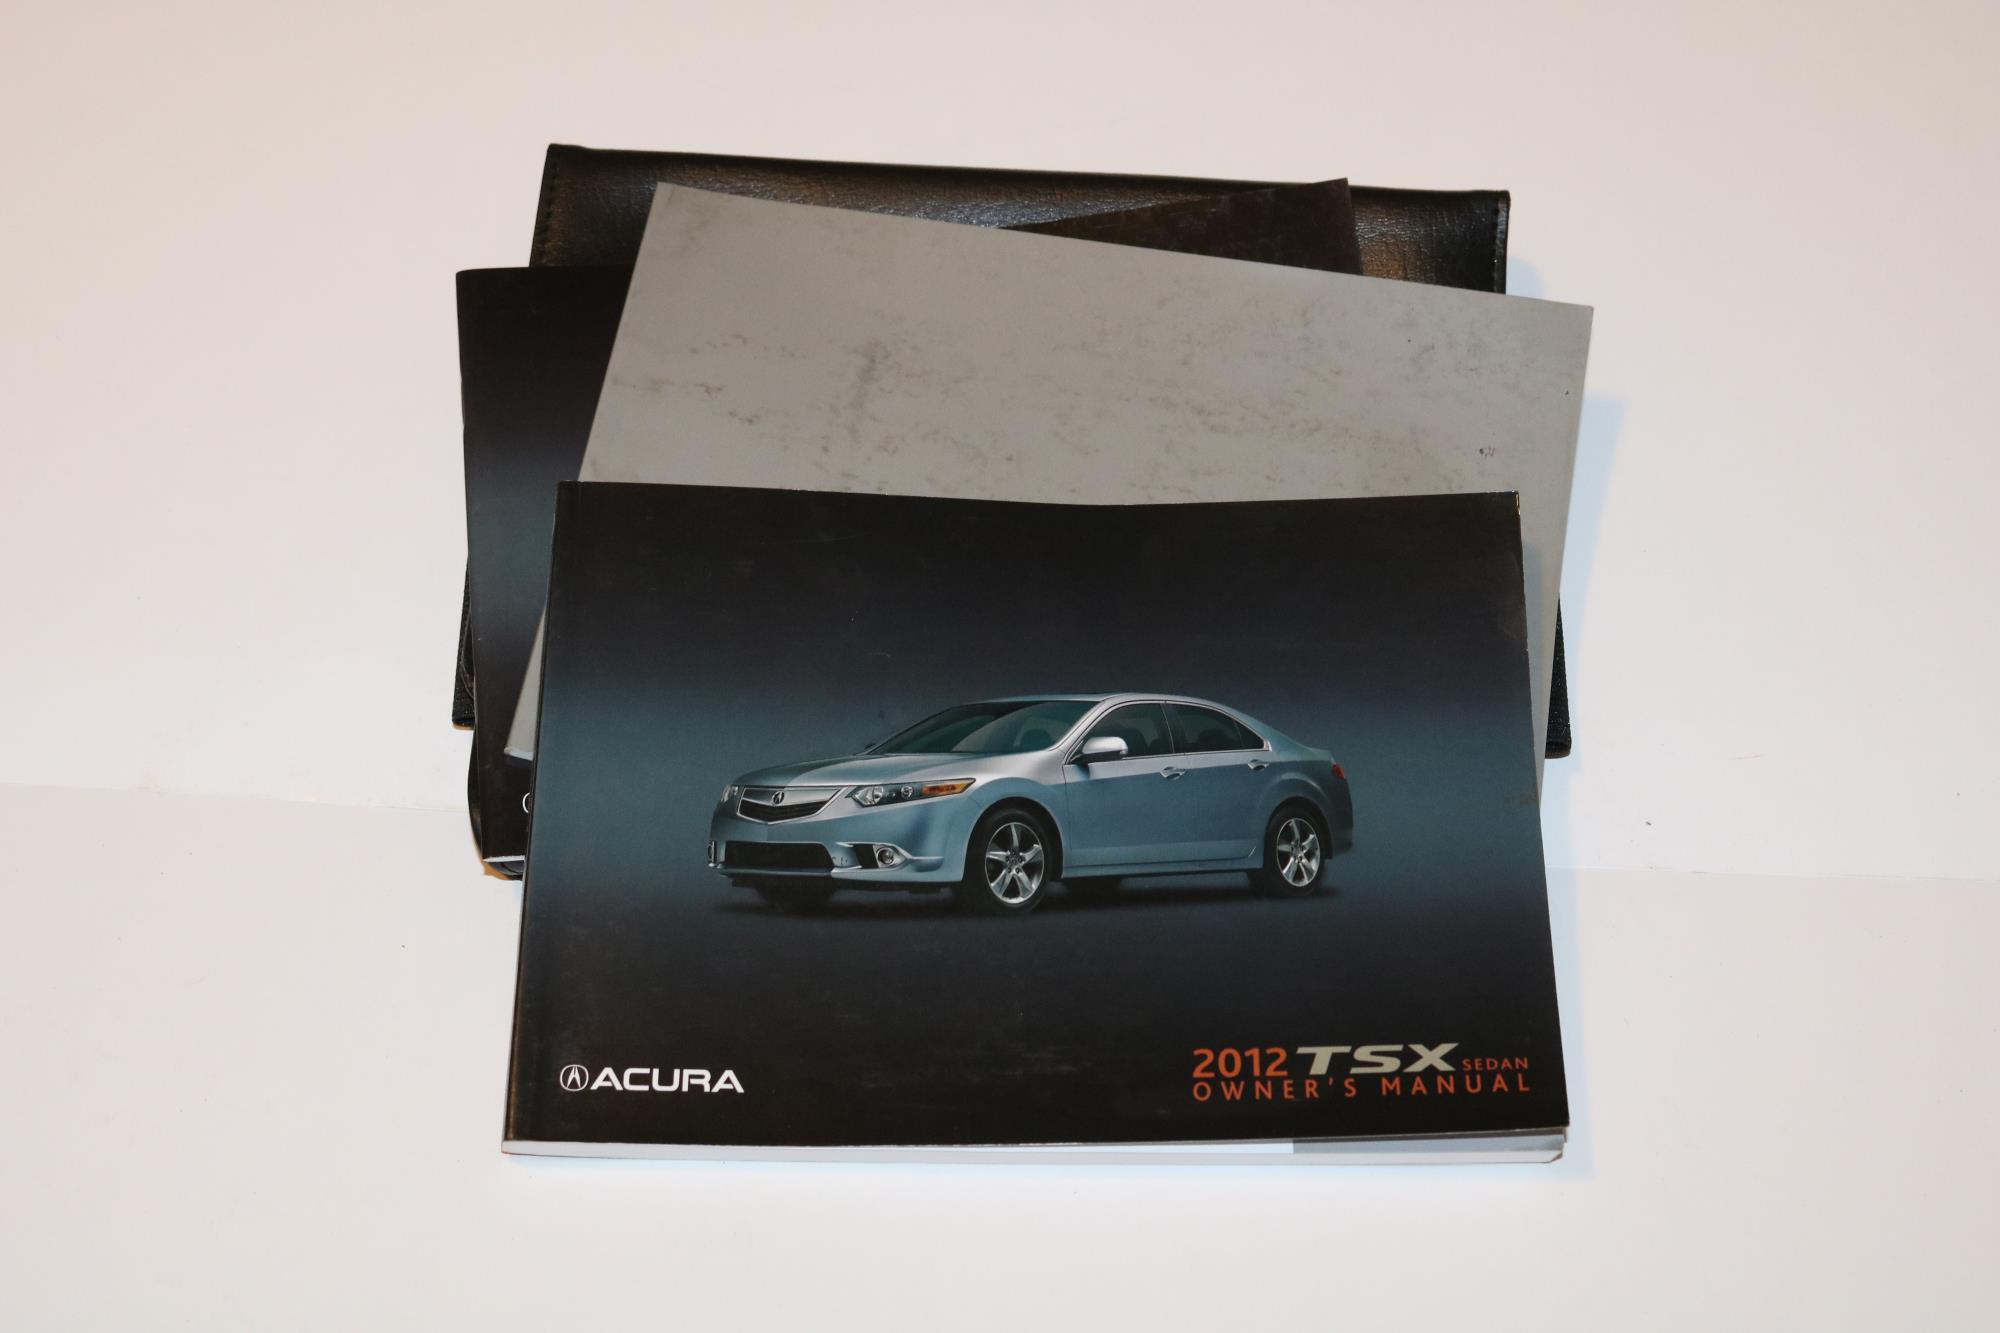 12 2012 Acura TSX Owners Manual Book Guide Set W/ Case